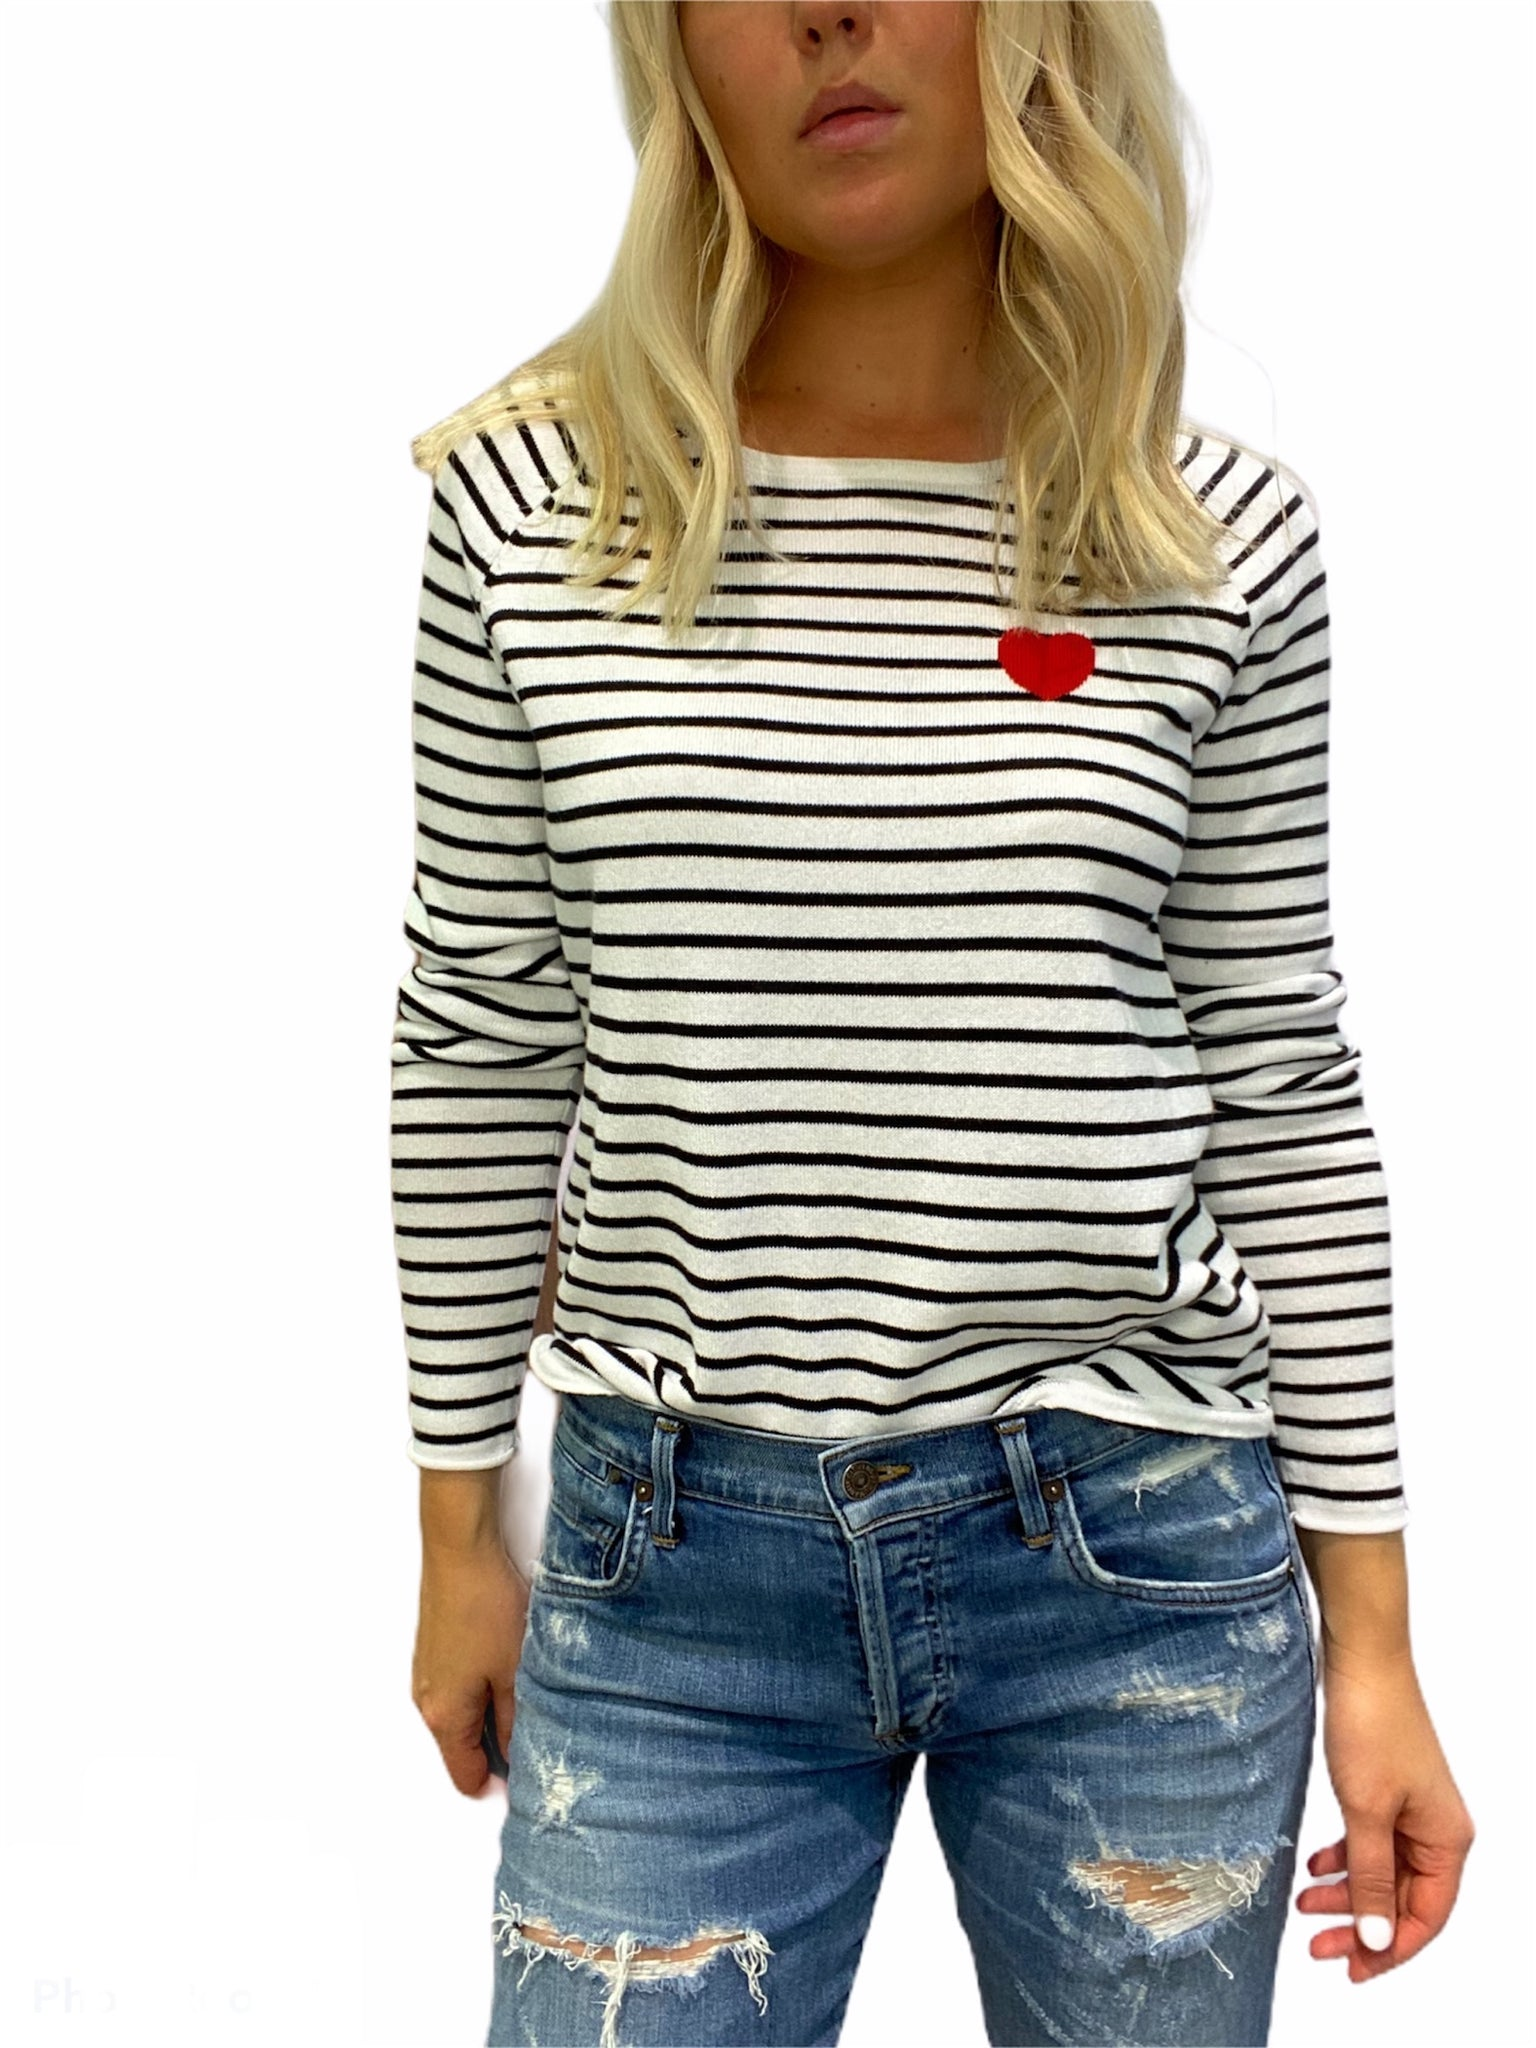 Stripe T-Shirt with Red Heart